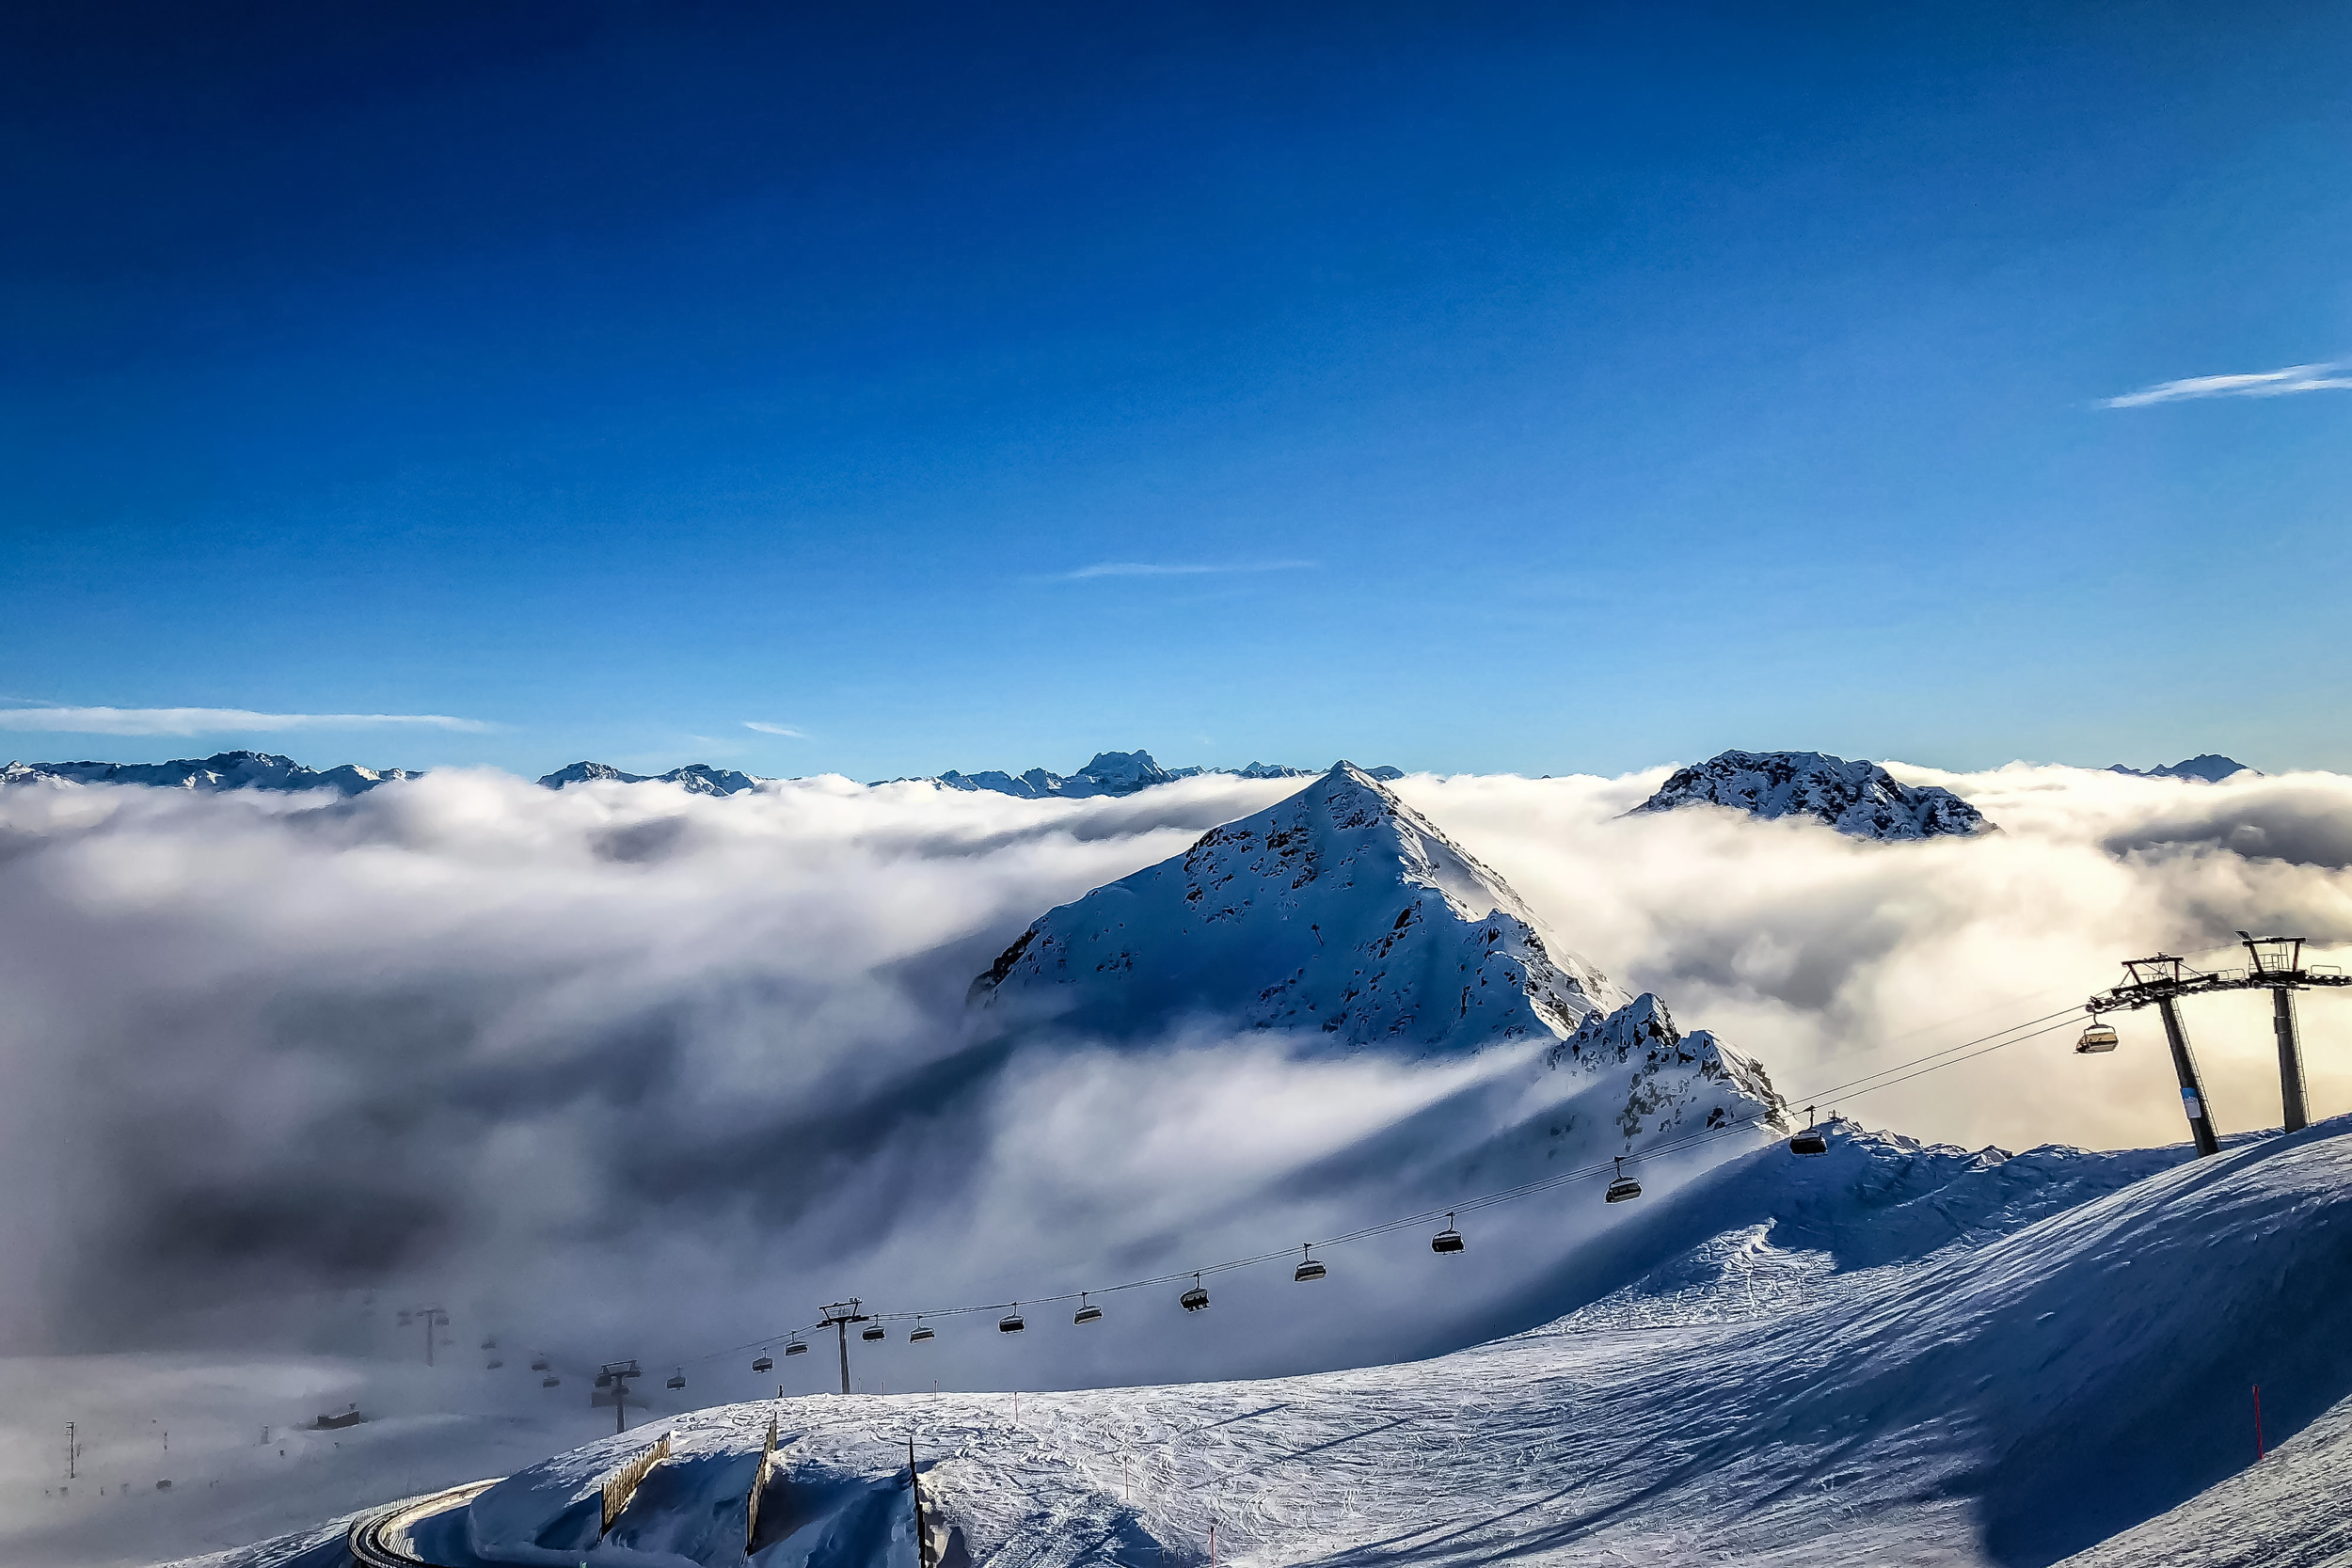 High above the clouds at Weissfluhjoch station. Davos, Switzerland, January 2018.